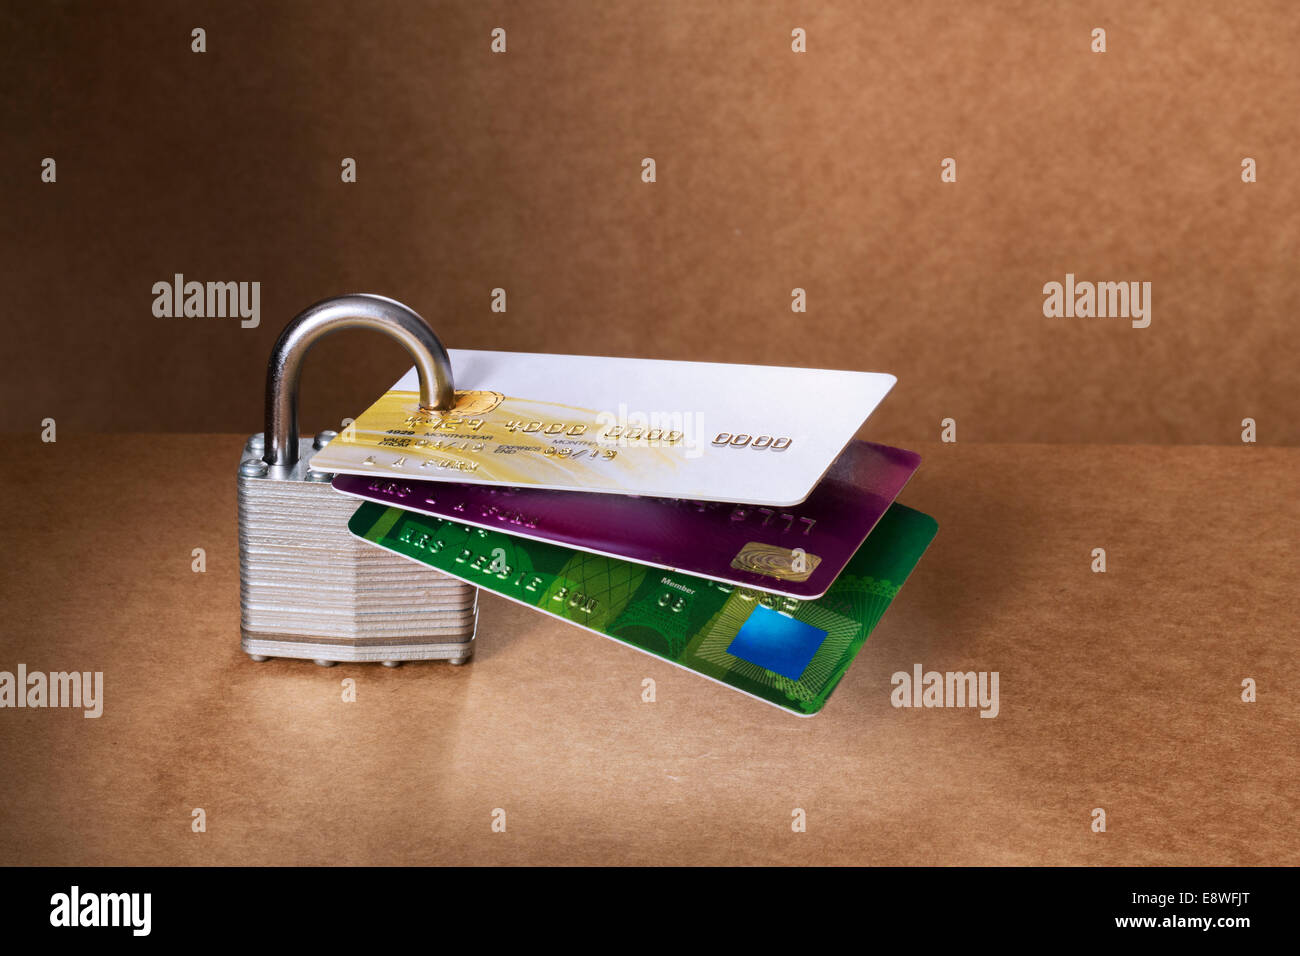 Credit cards attached to padlock - Stock Image